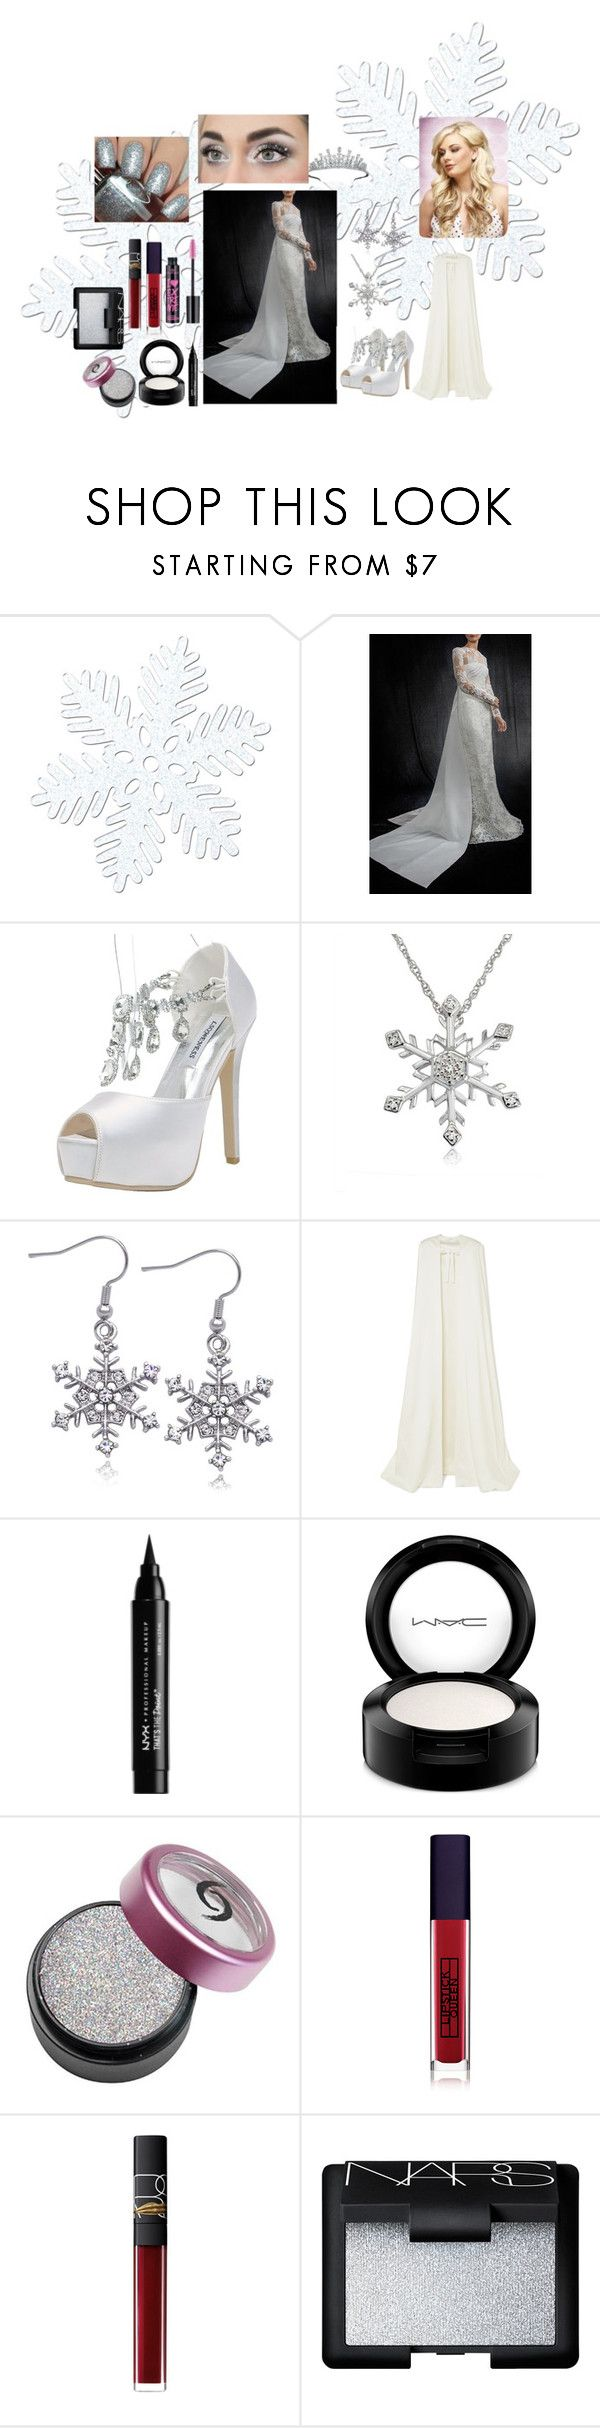 """Snow queen ❄👑"" by kellykalymnoskd on Polyvore featuring Amanda Rose Collection, Van Cleef & Arpels, Roland Mouret, NYX, MAC Cosmetics, Lipstick Queen, NARS Cosmetics and Dimepiece"